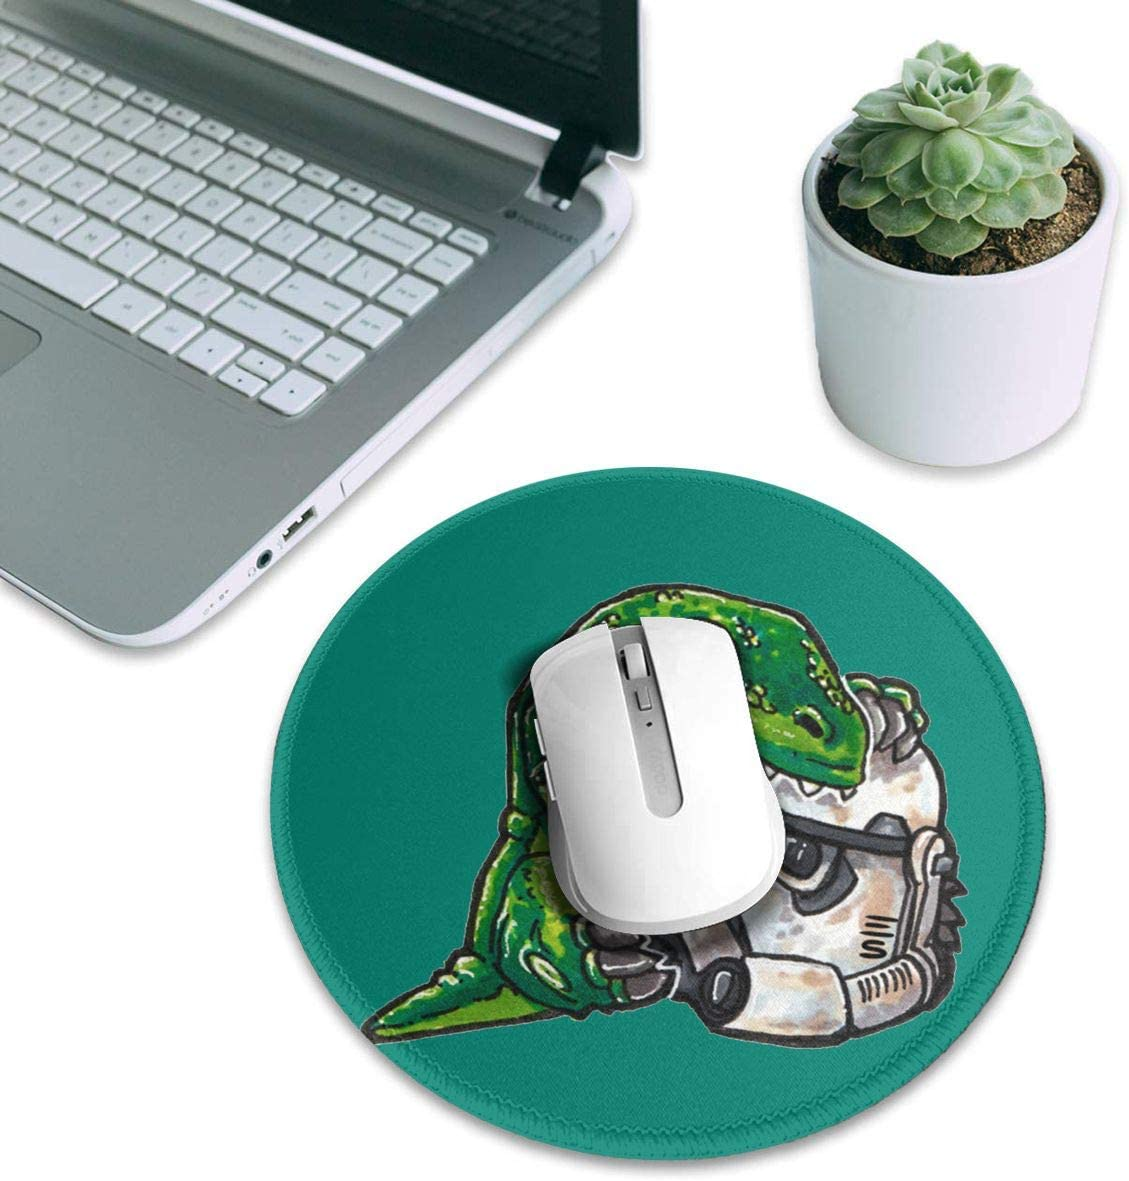 Dinosaur Eating Robot Round Gaming Mouse Pad for Office and Home 7.9inx7.9 in